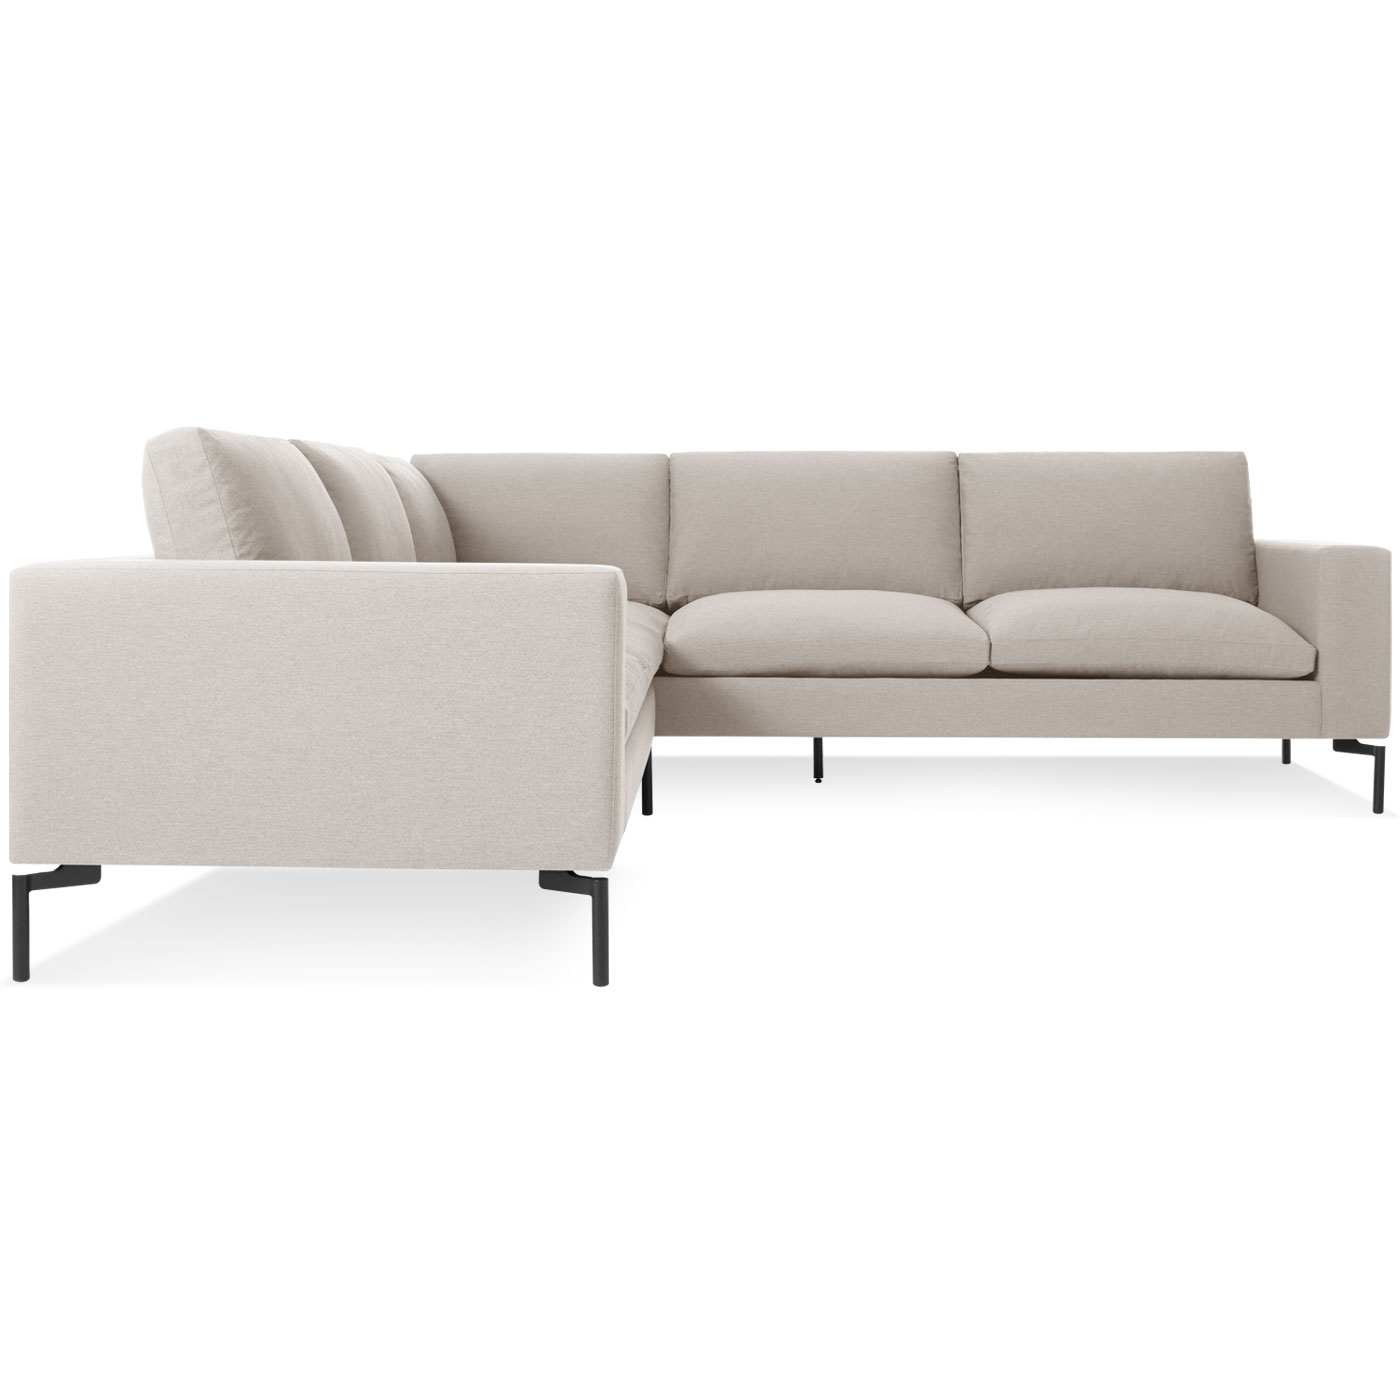 Recent New Standard Small Sectional Sofa – Modern Sofas (View 3 of 20)